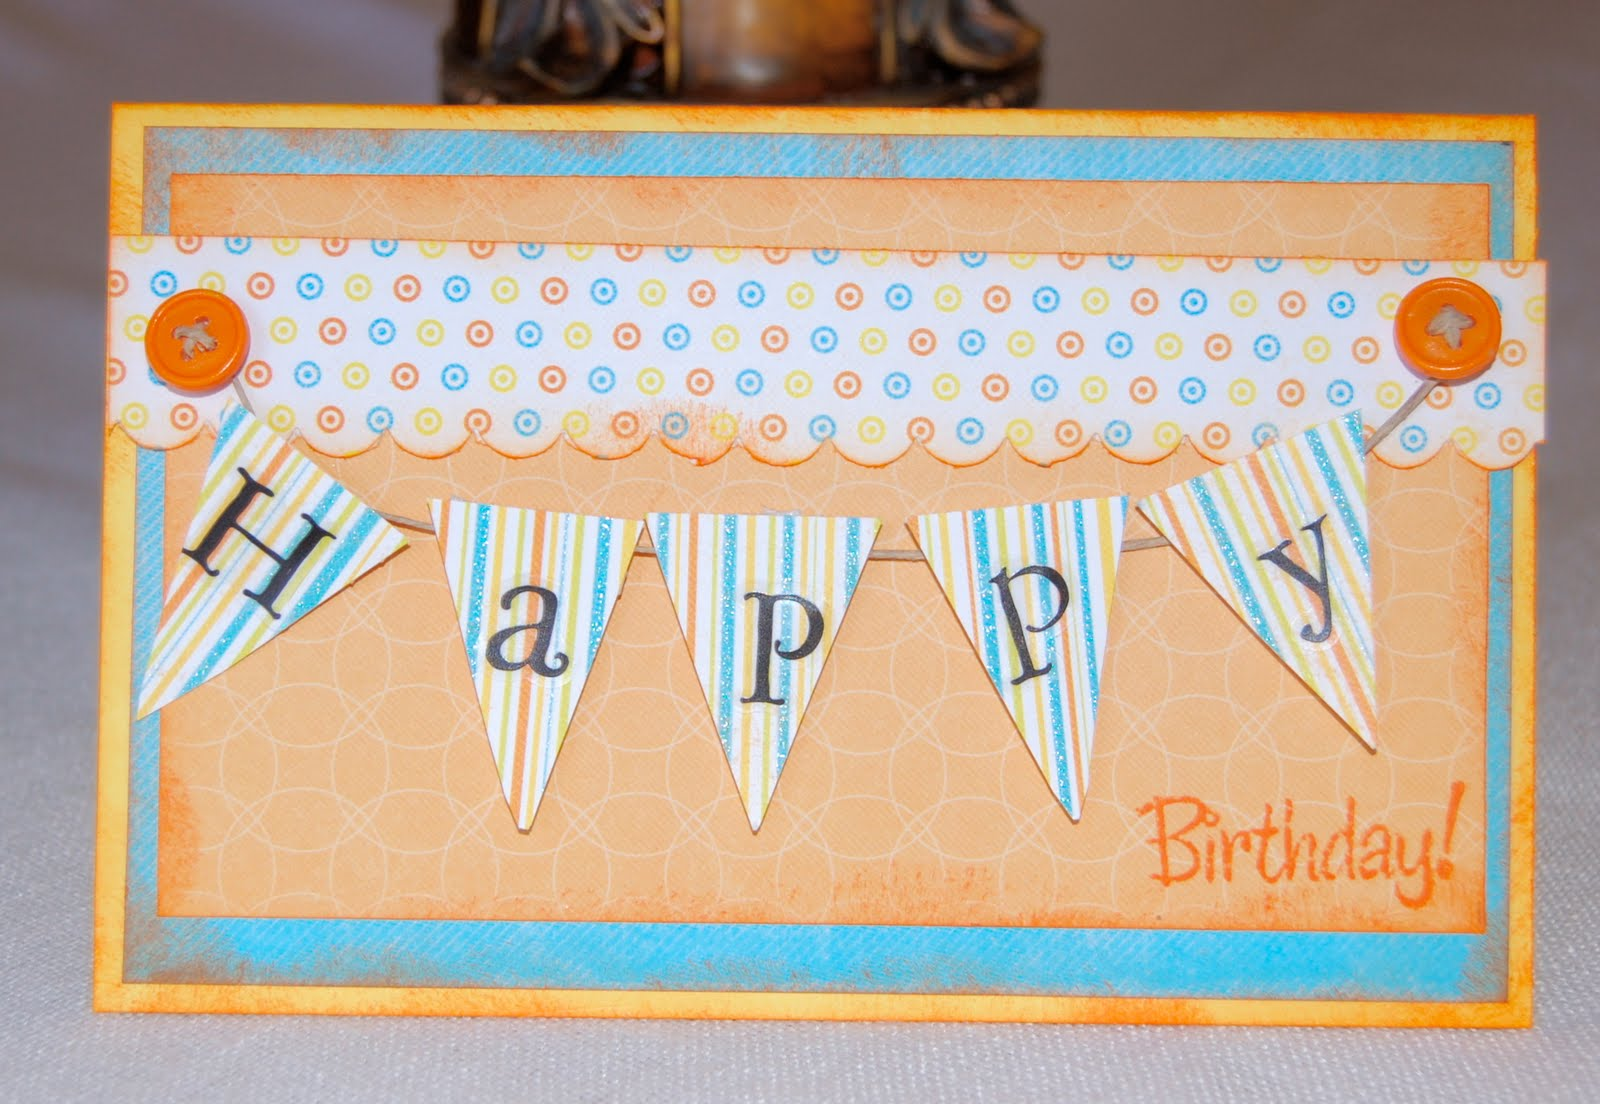 Birthday Banner. Buenas Dias! For todays card, I jumped on the trendy